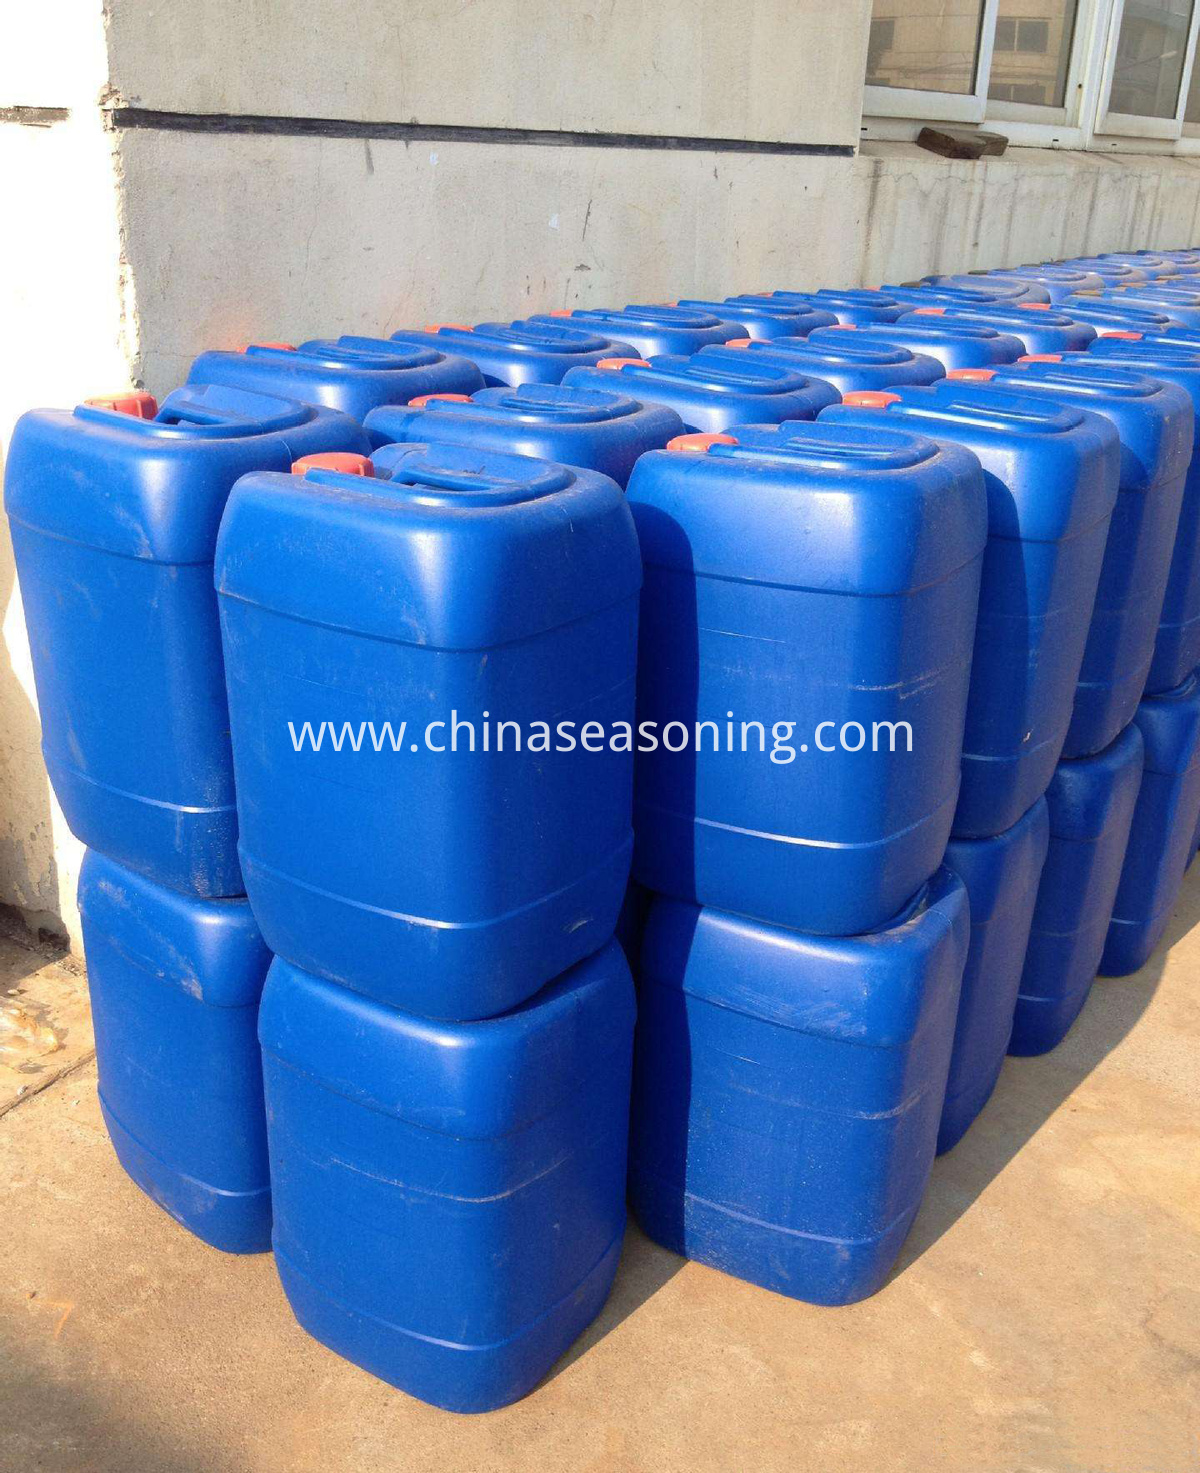 Hexadecyltrimethyl ammonium chloride